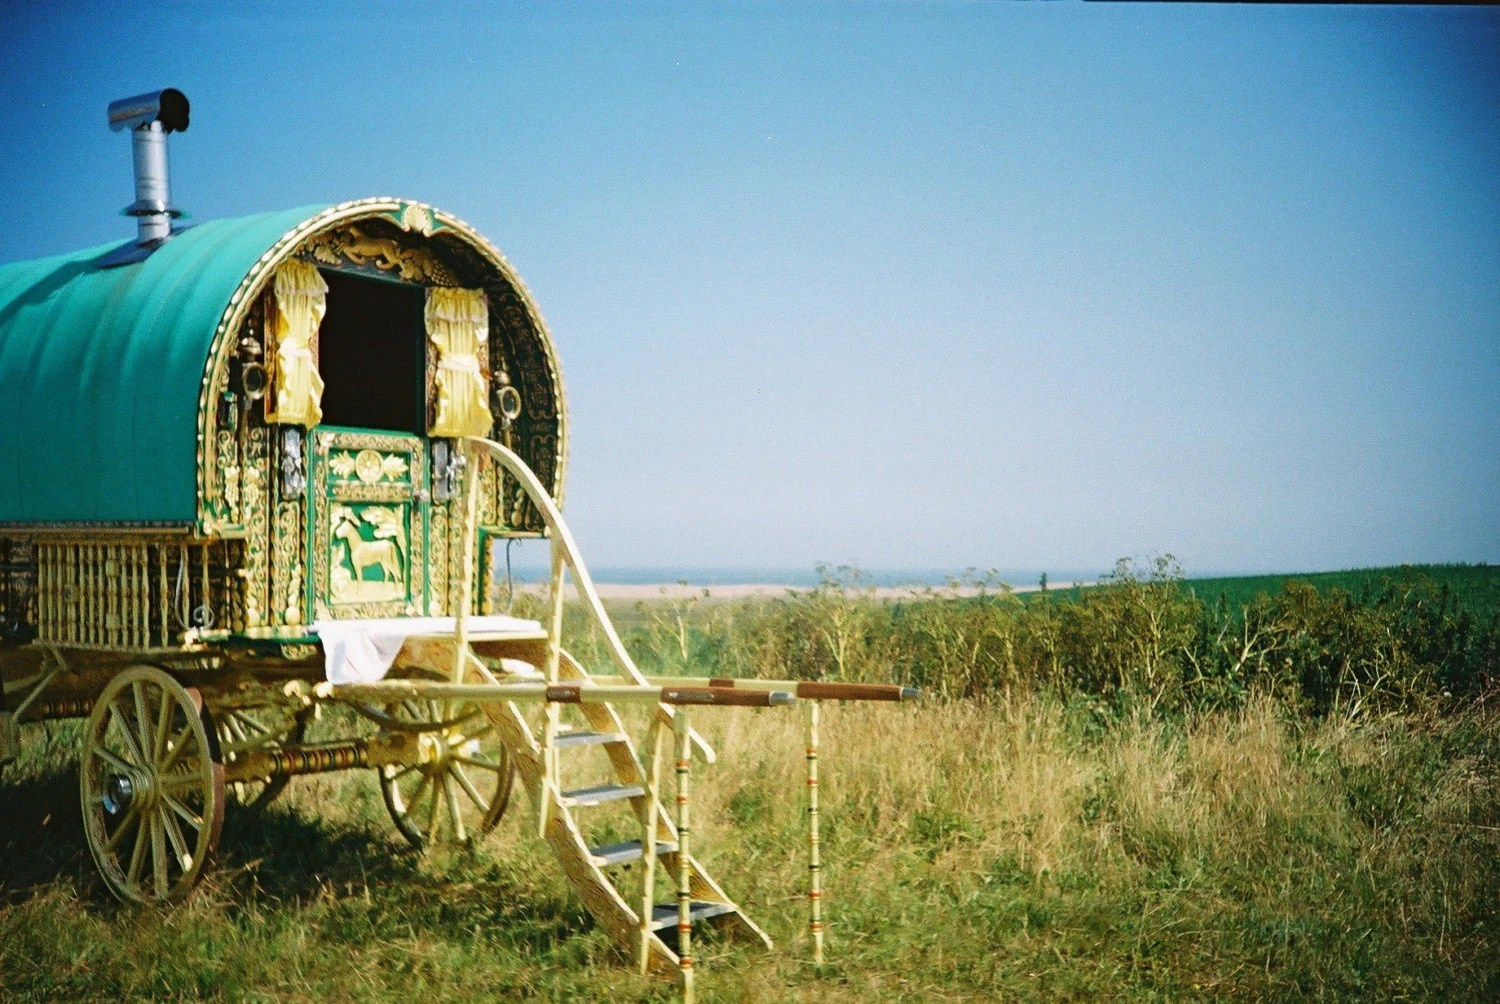 Gypsy Caravan by the Sea